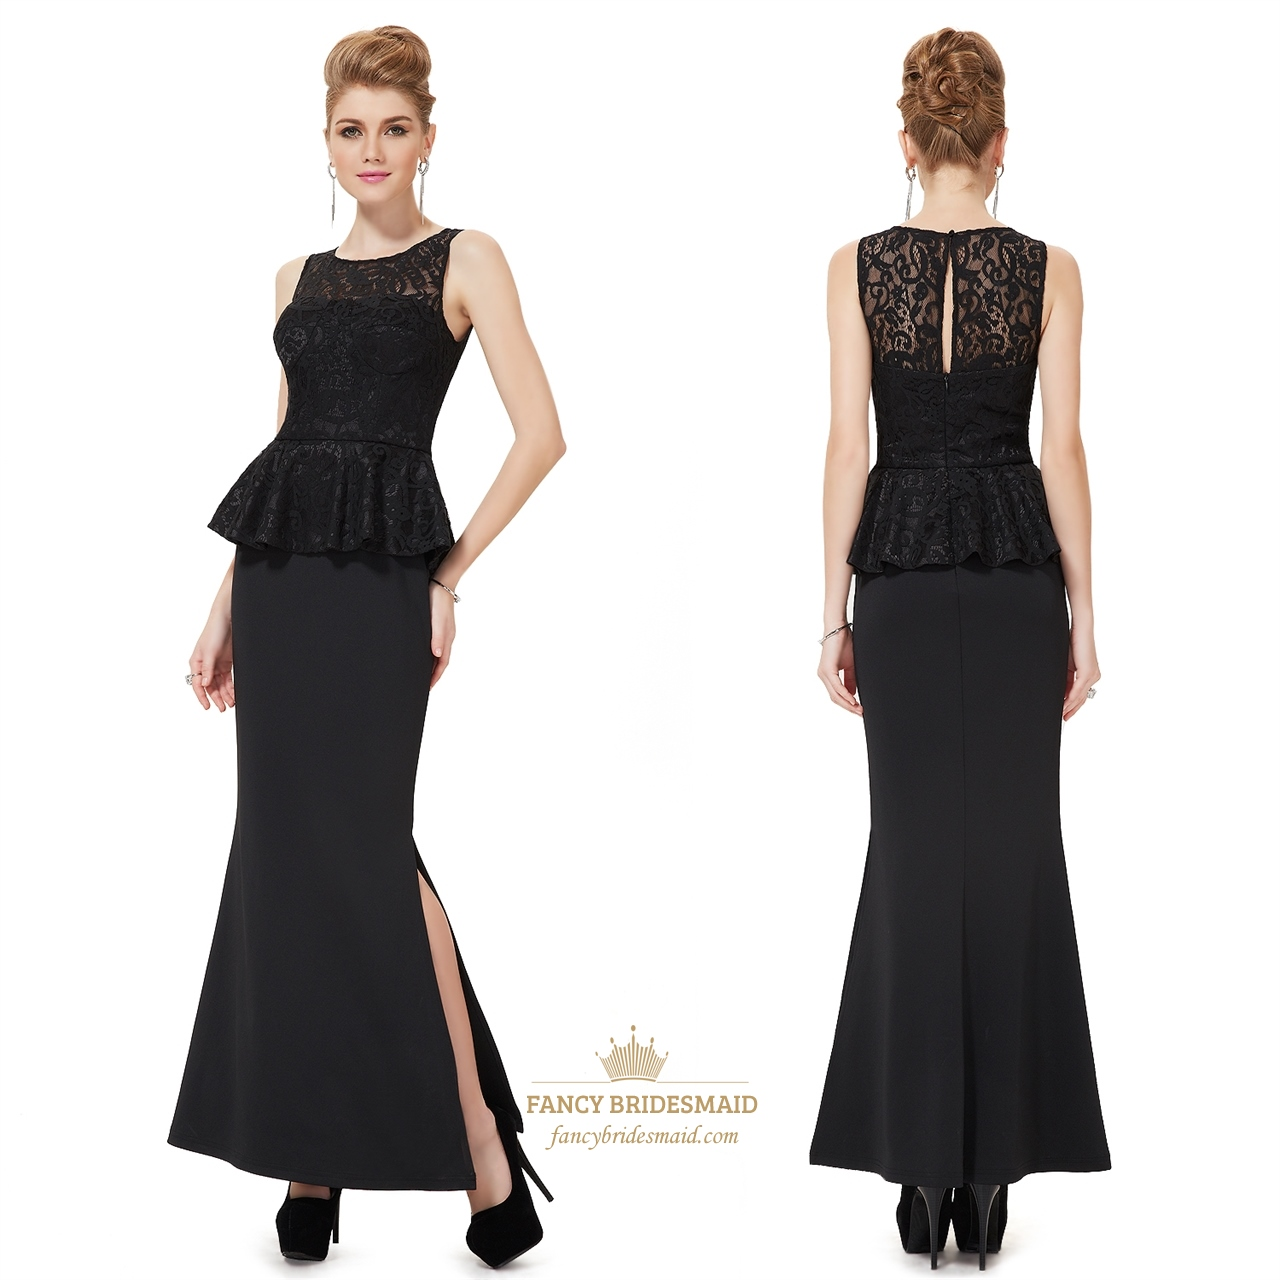 2019 year for girls- Lace black overlay bridesmaid dresses